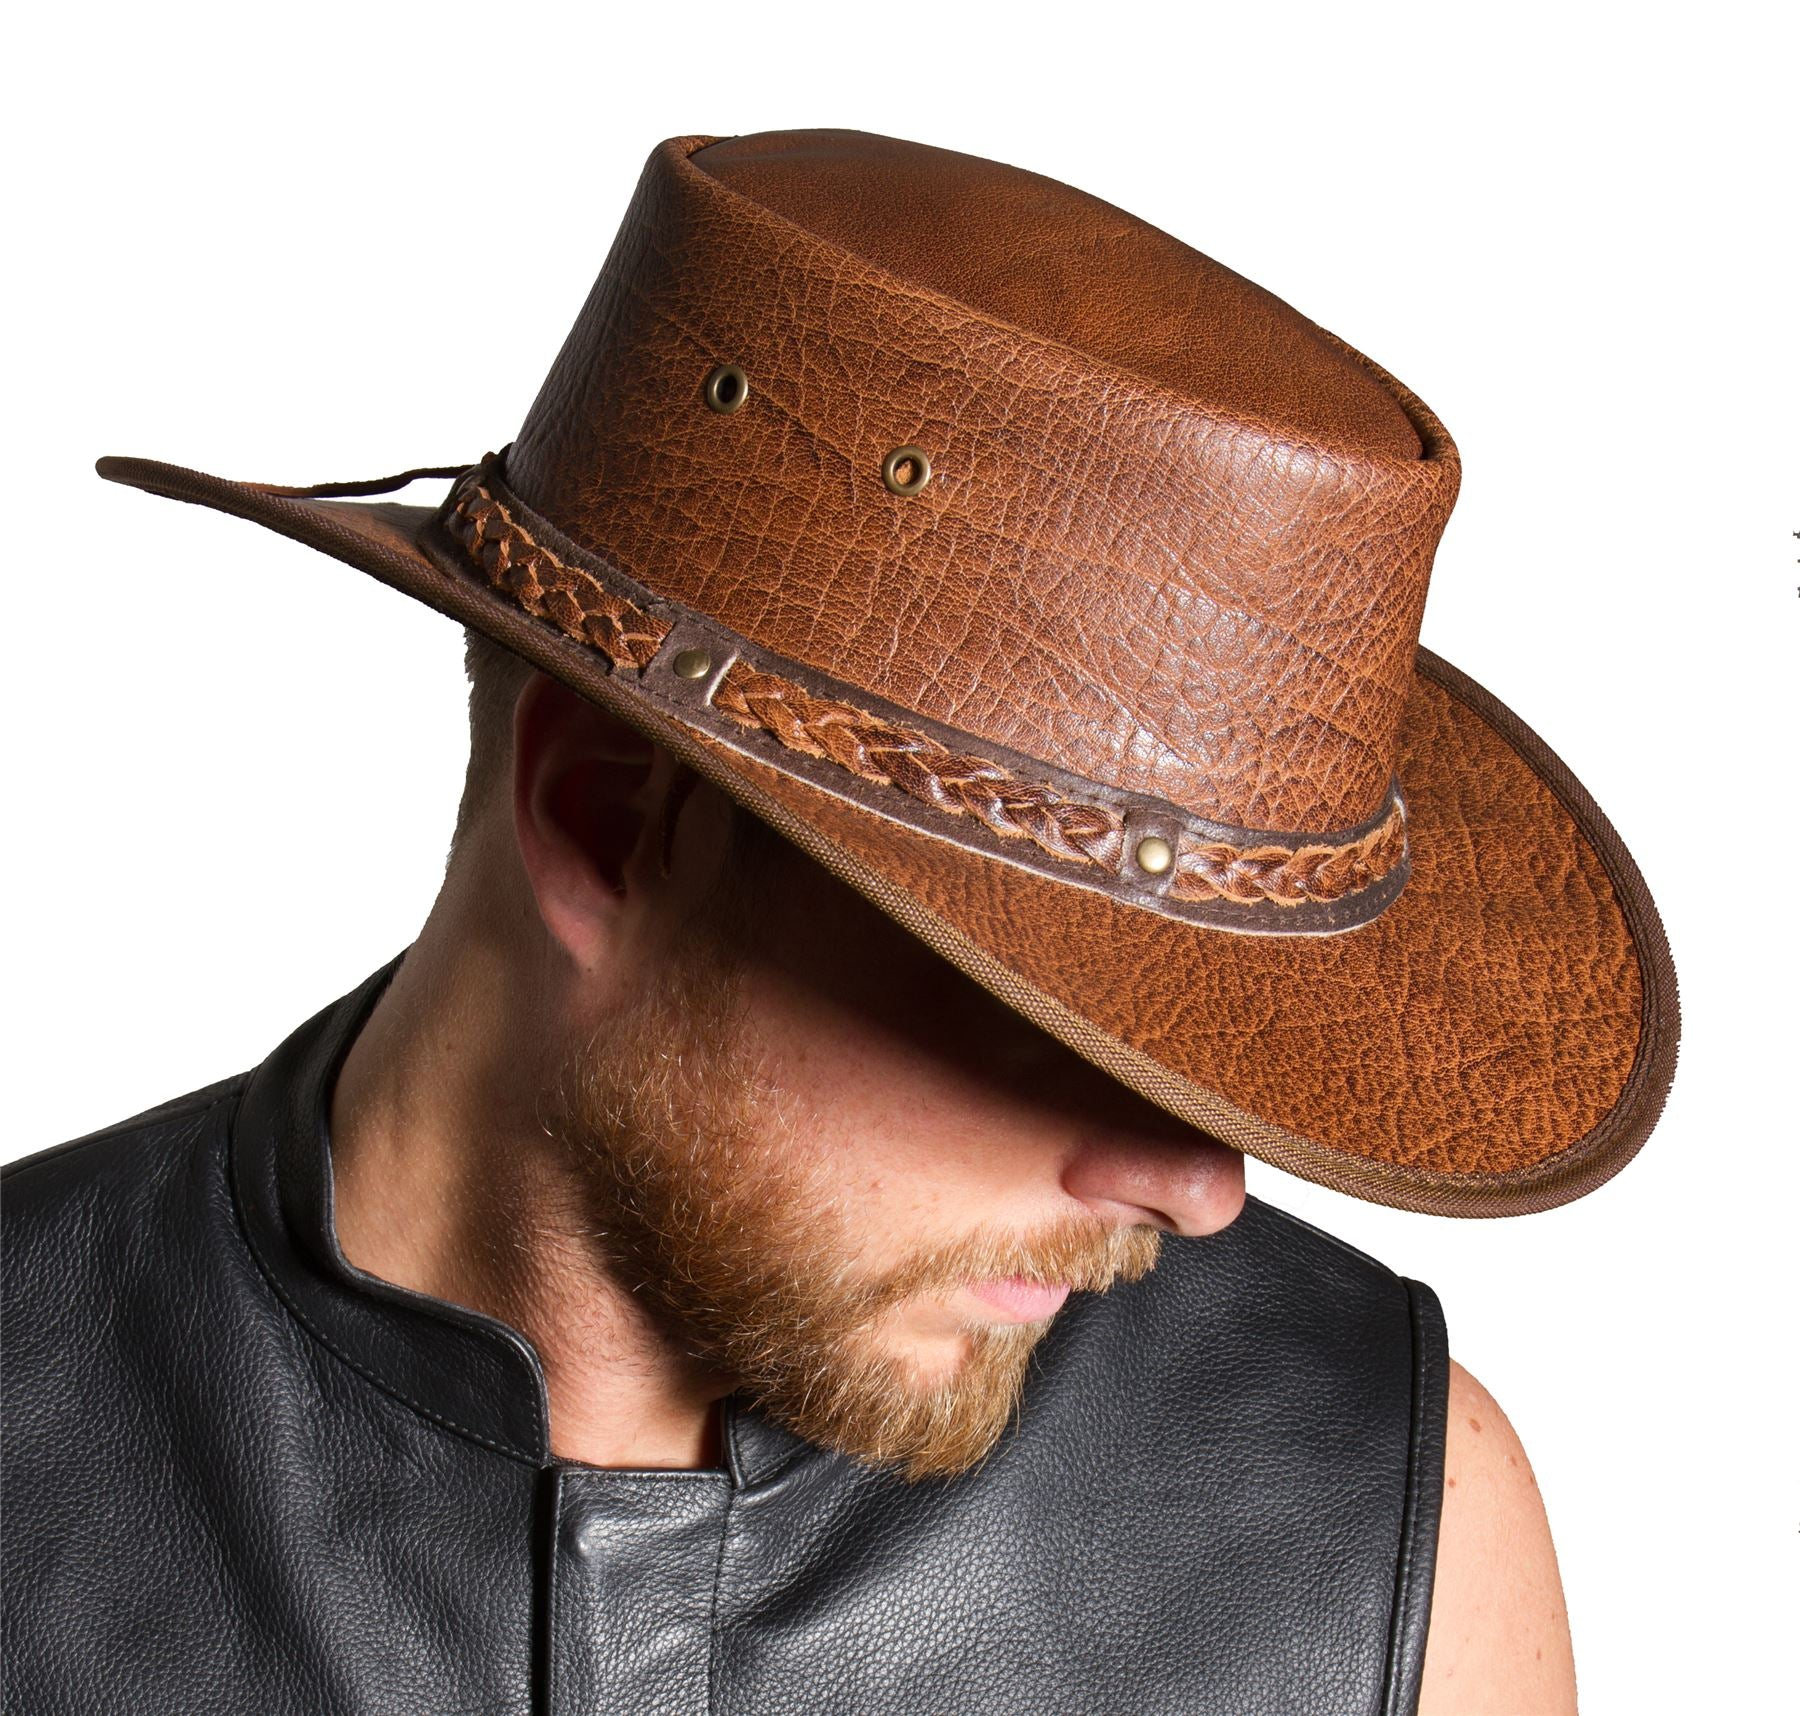 Genuine Full Leather Foldable Cowboy Hat For Men   Women By Lesa Colle –  Lesa Collection 08872dd3608